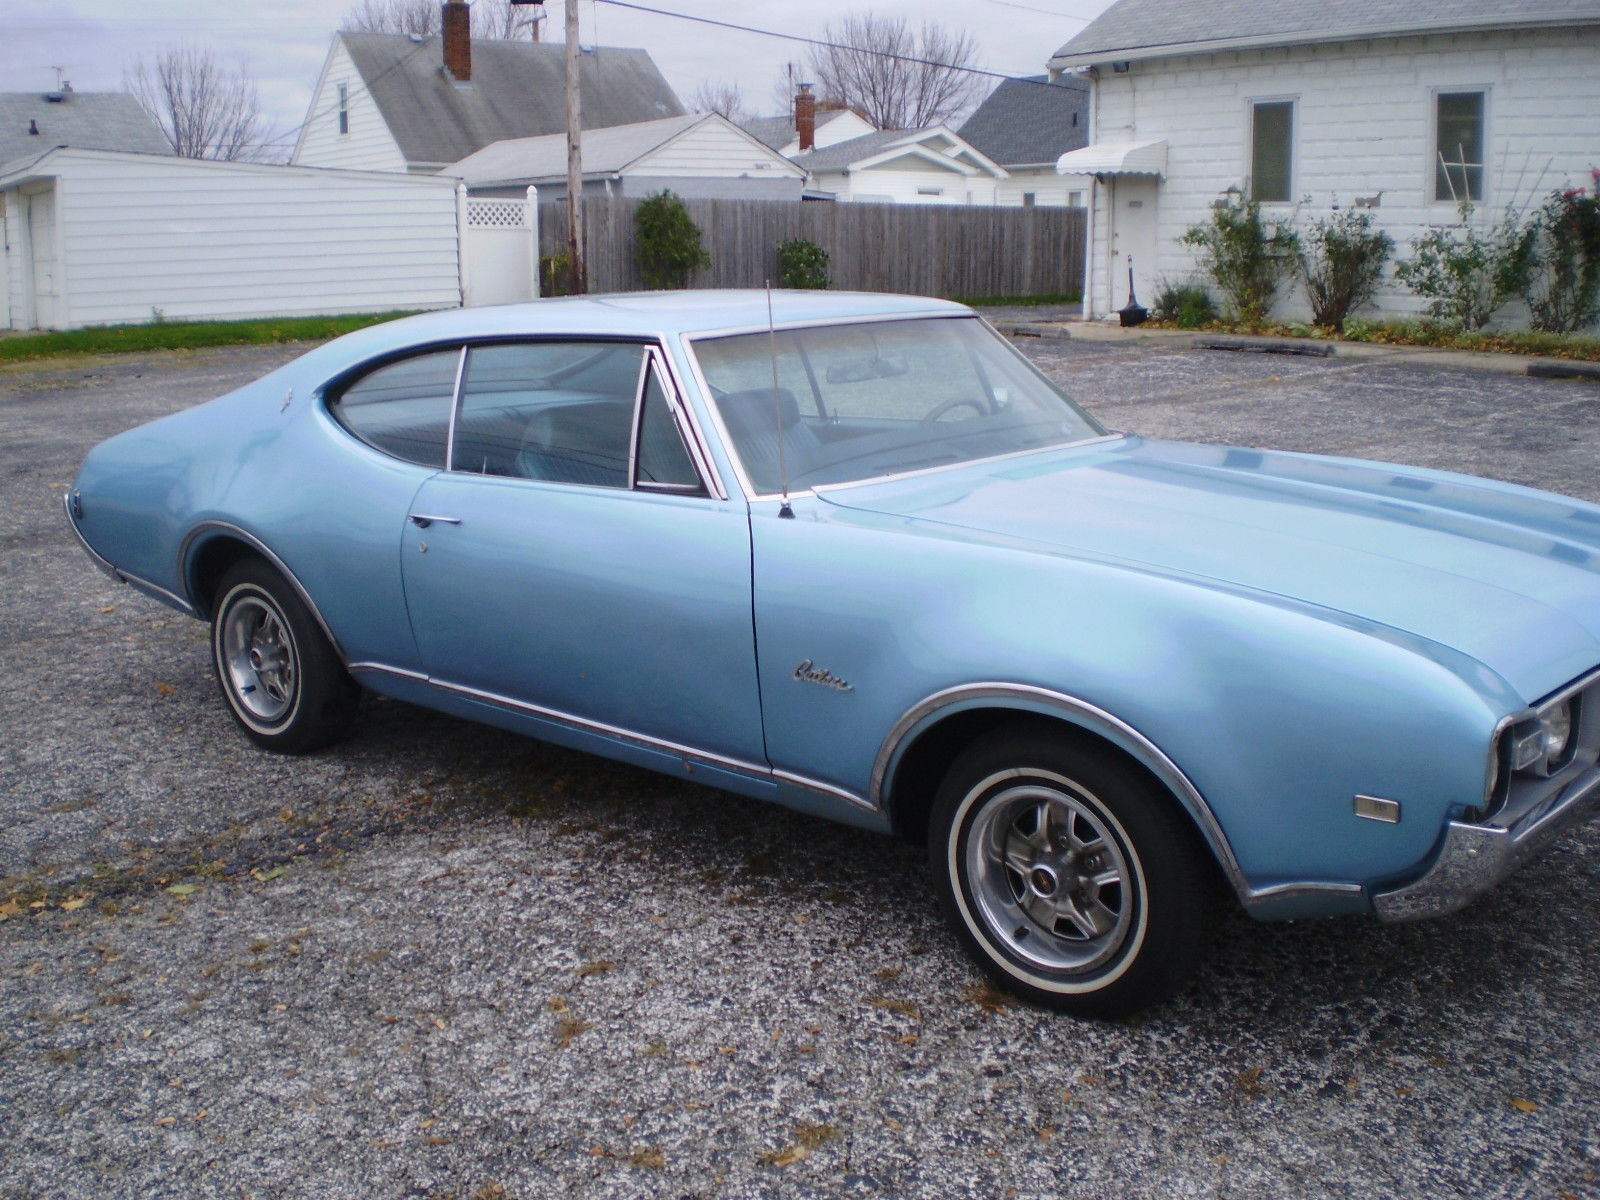 1968 Oldsmobile Cutlass Supreme - Rare Find - Beautiful Show Car by